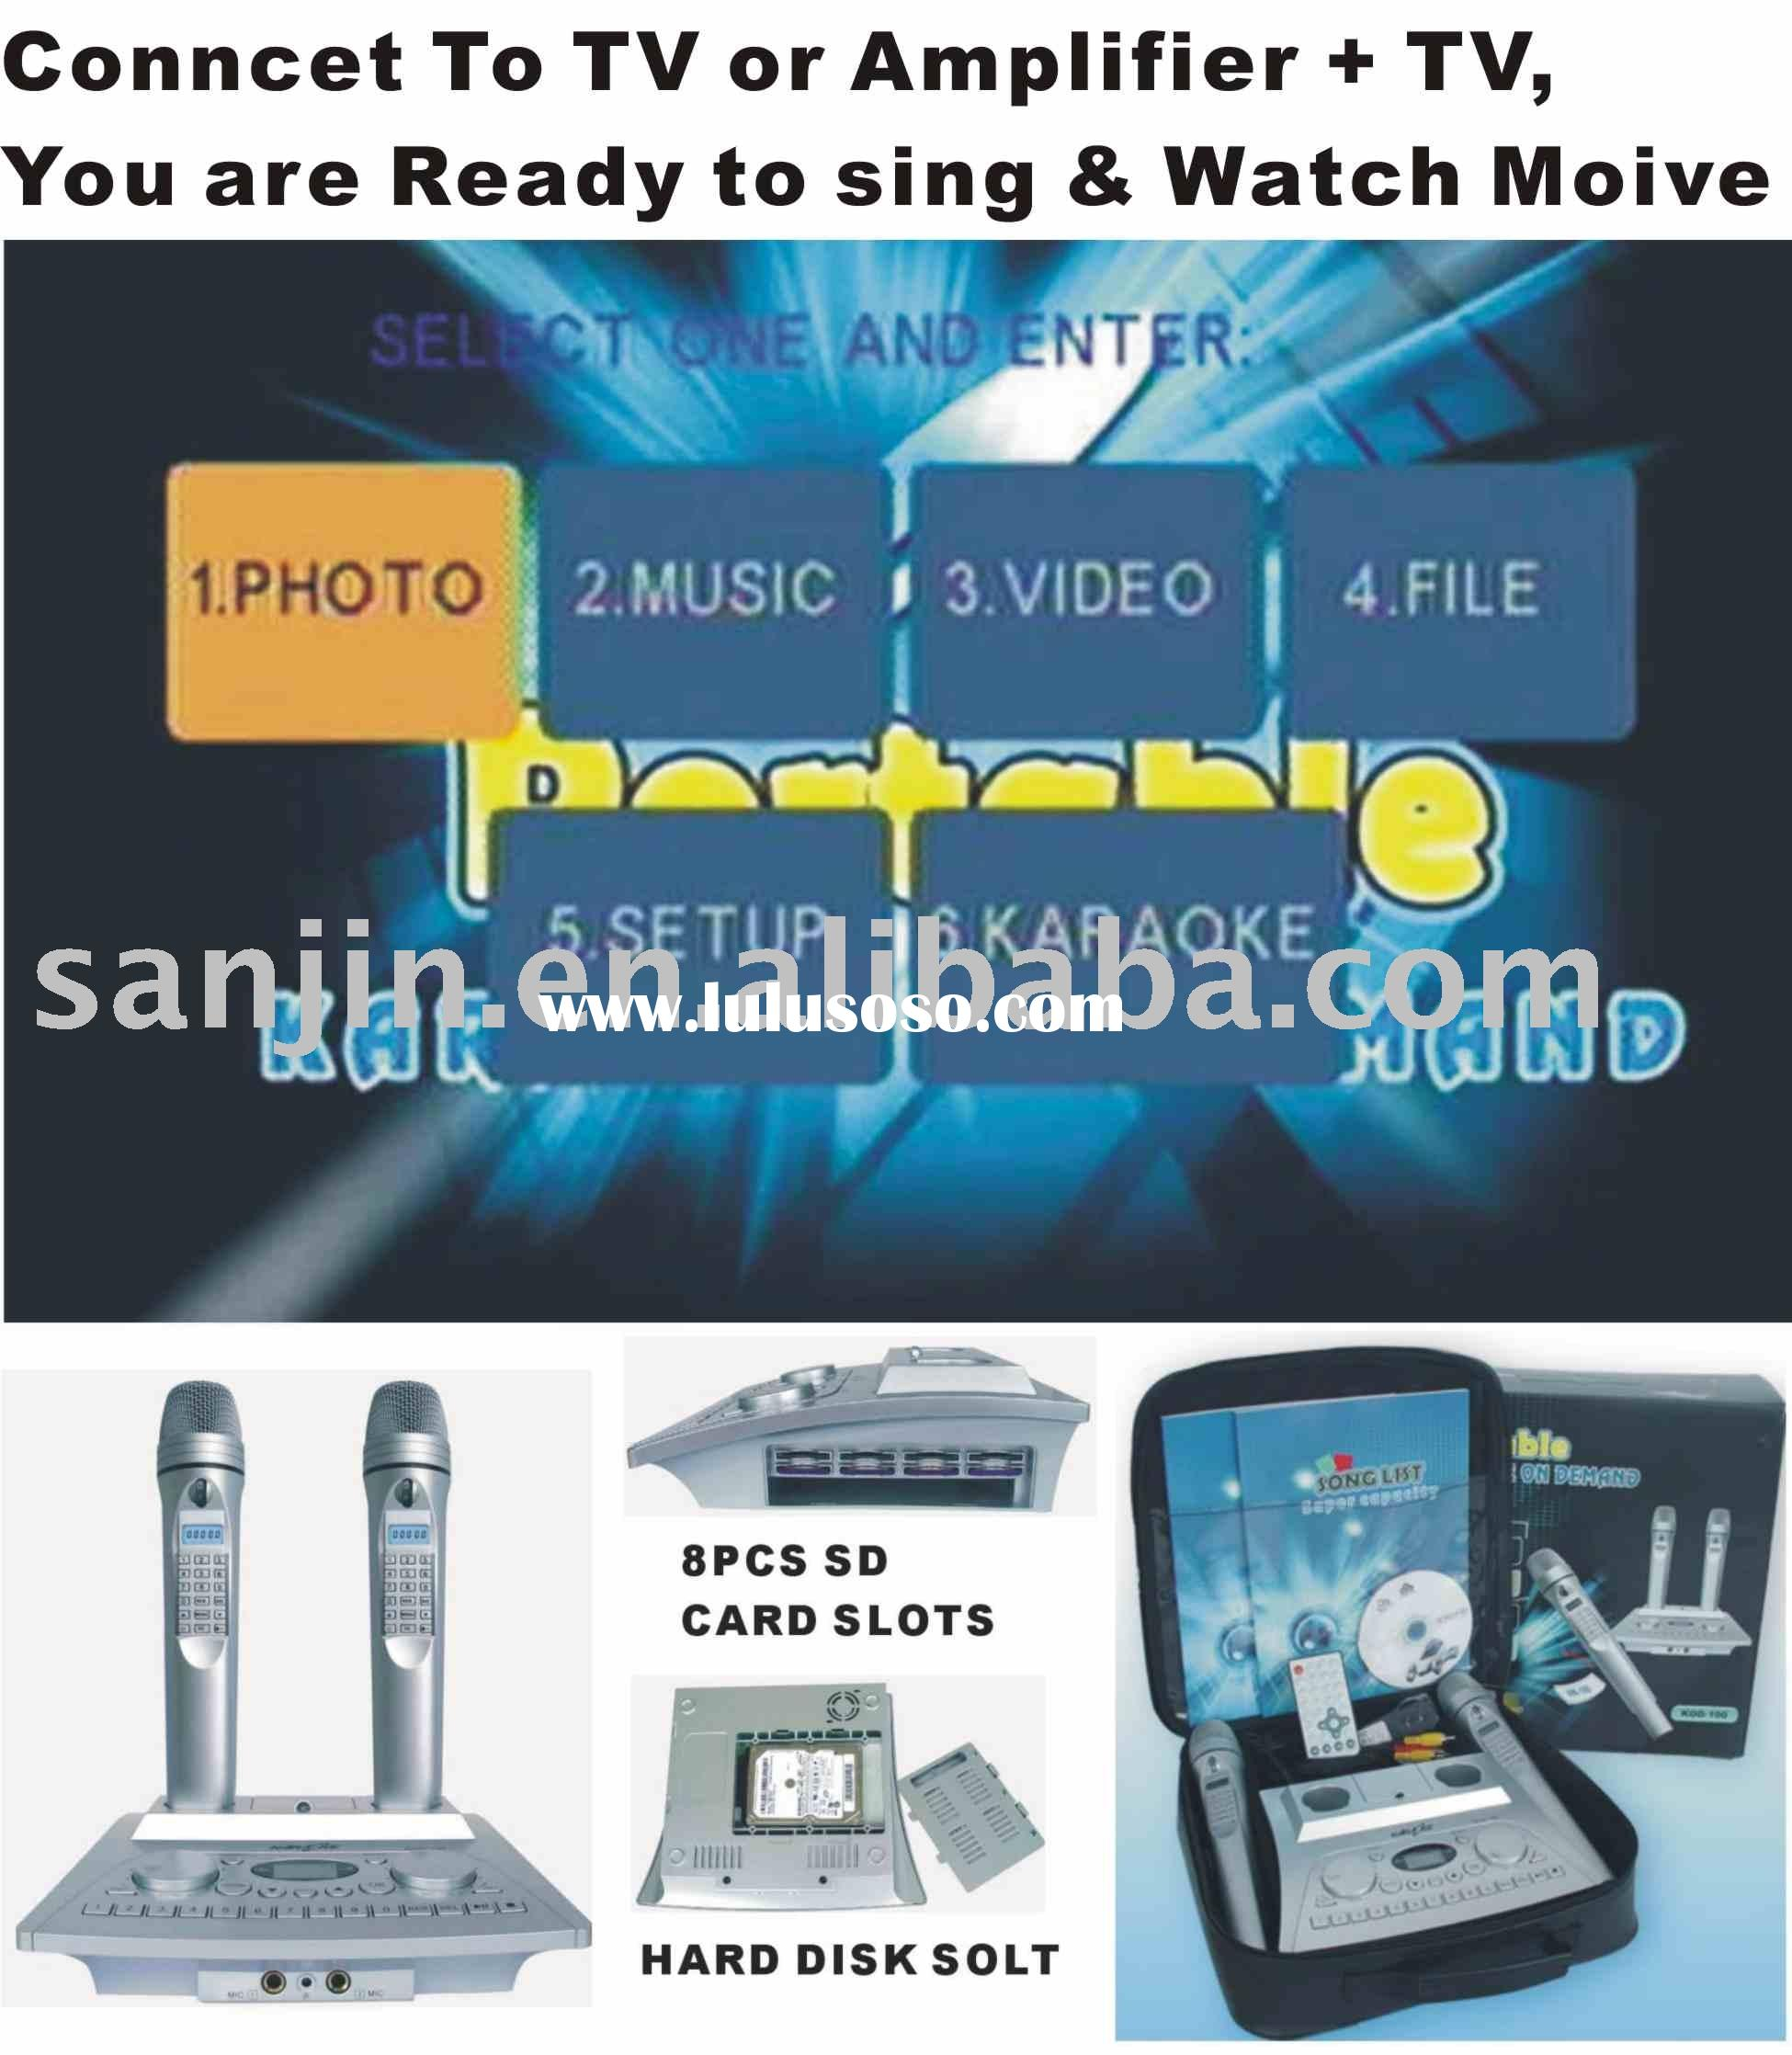 Magic Sing Along Portable Karaoke player+4PcsSD Card Slots+160GB Hard Disk (optional)+download(KOD-1